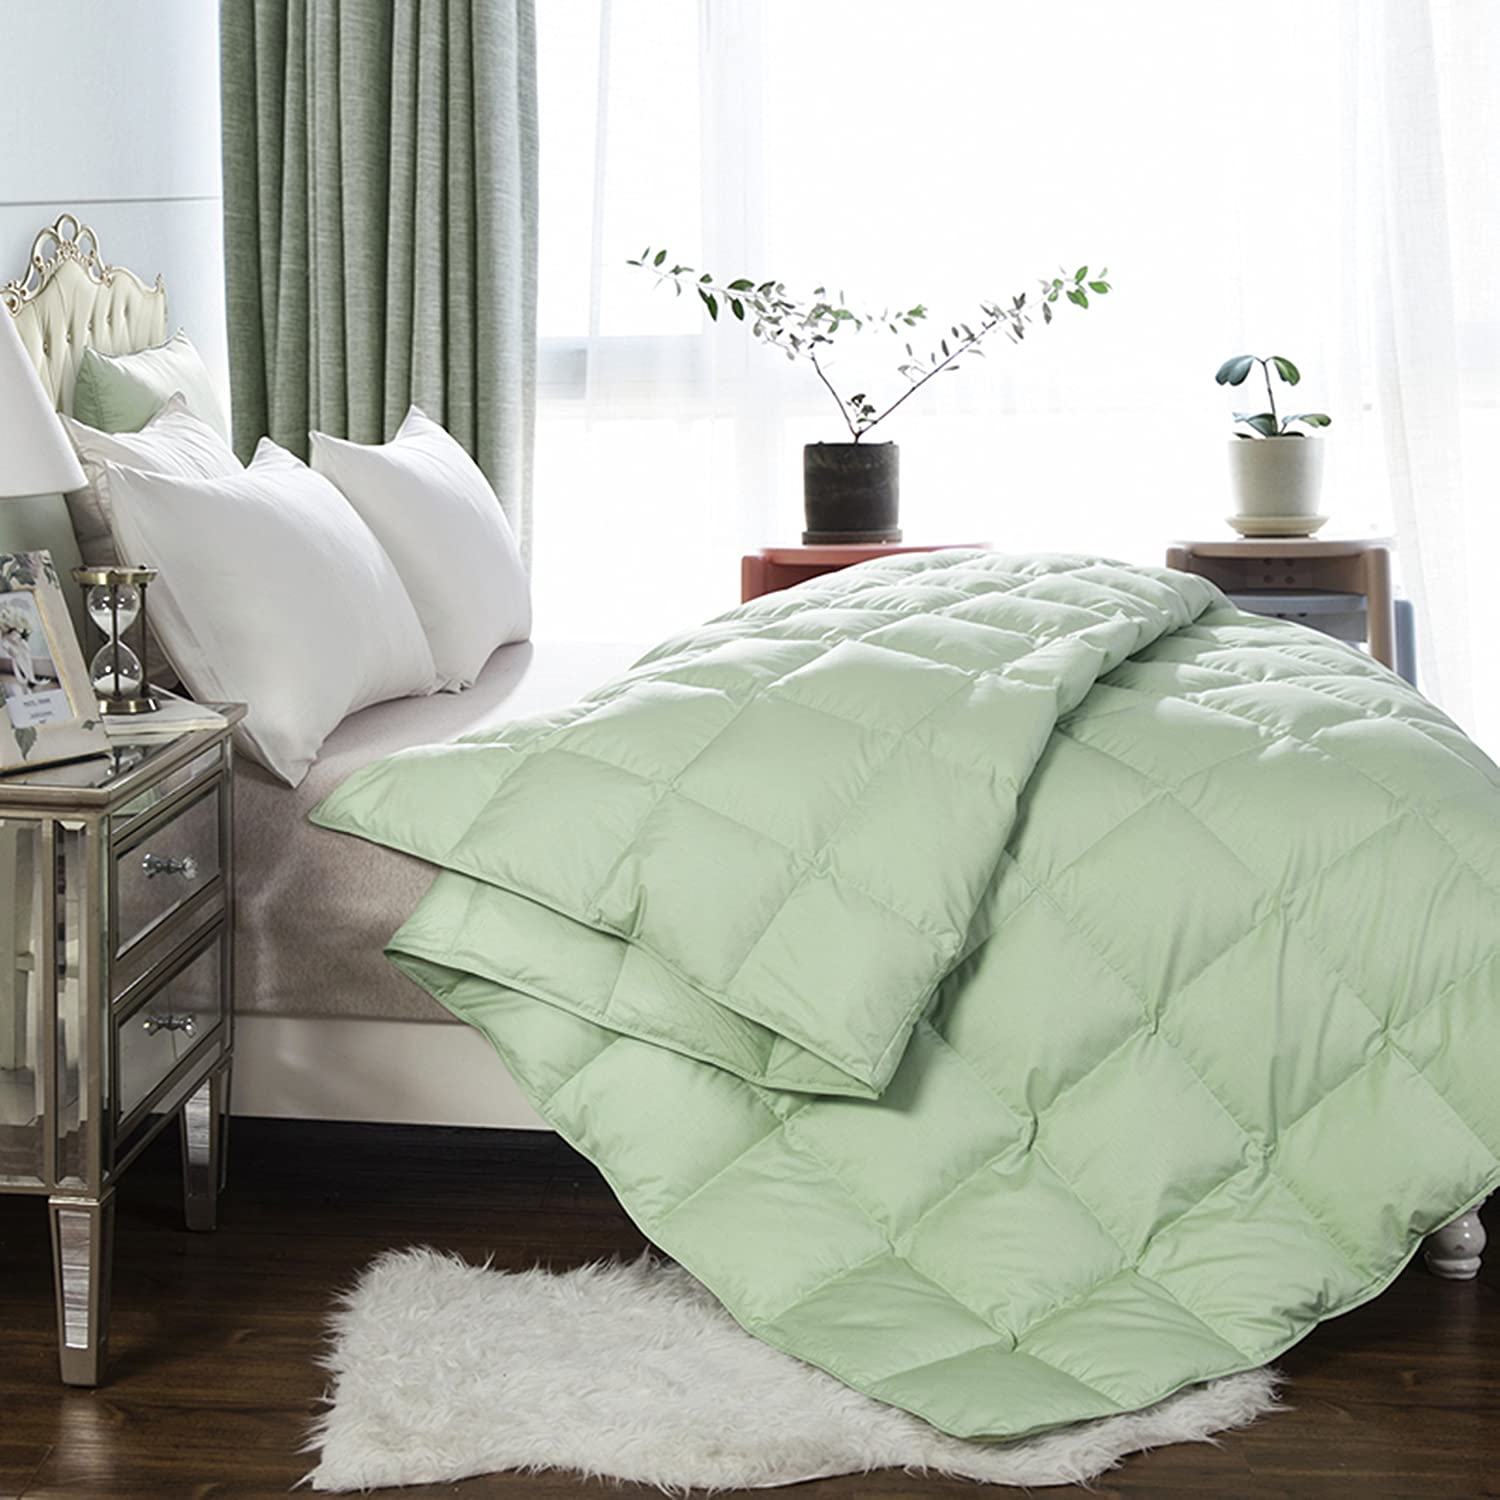 sanxiang lightweight white goose down and feather comforter blanket for summer ebay. Black Bedroom Furniture Sets. Home Design Ideas